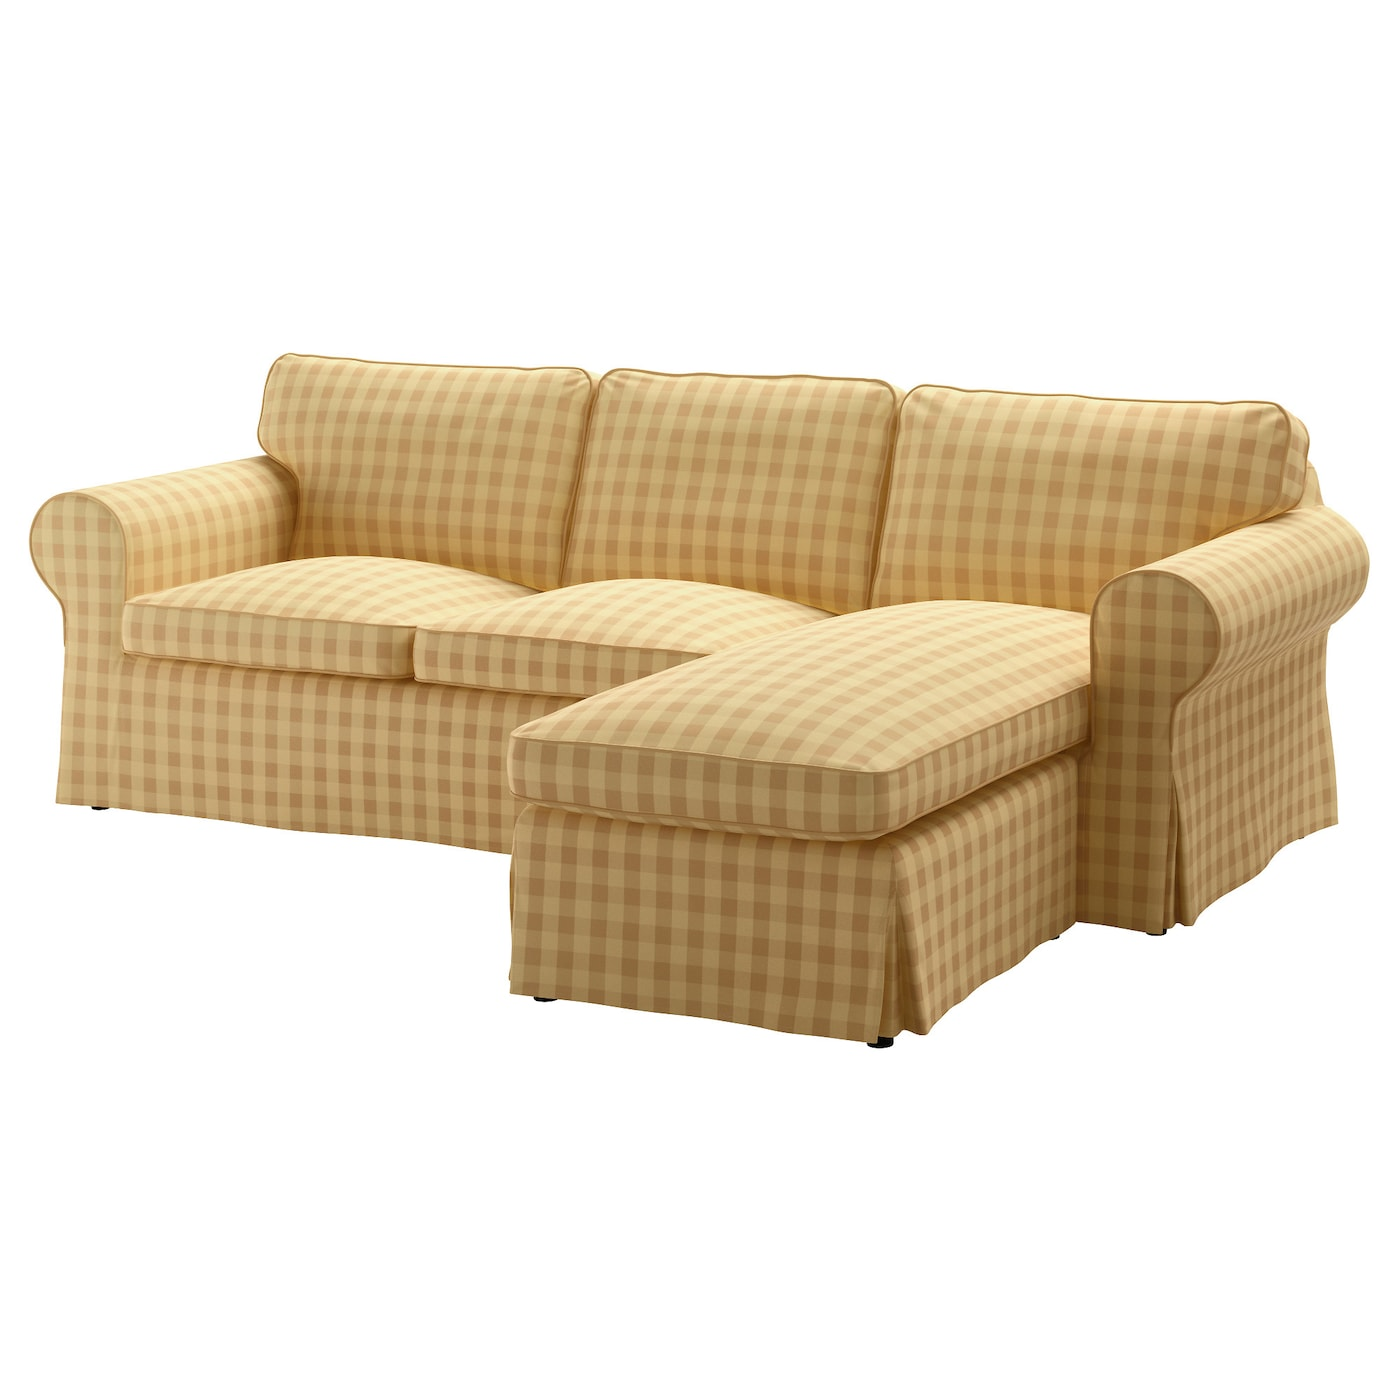 Ektorp cover two seat sofa w chaise longue skaftarp yellow - Chaise longue jardin ikea ...